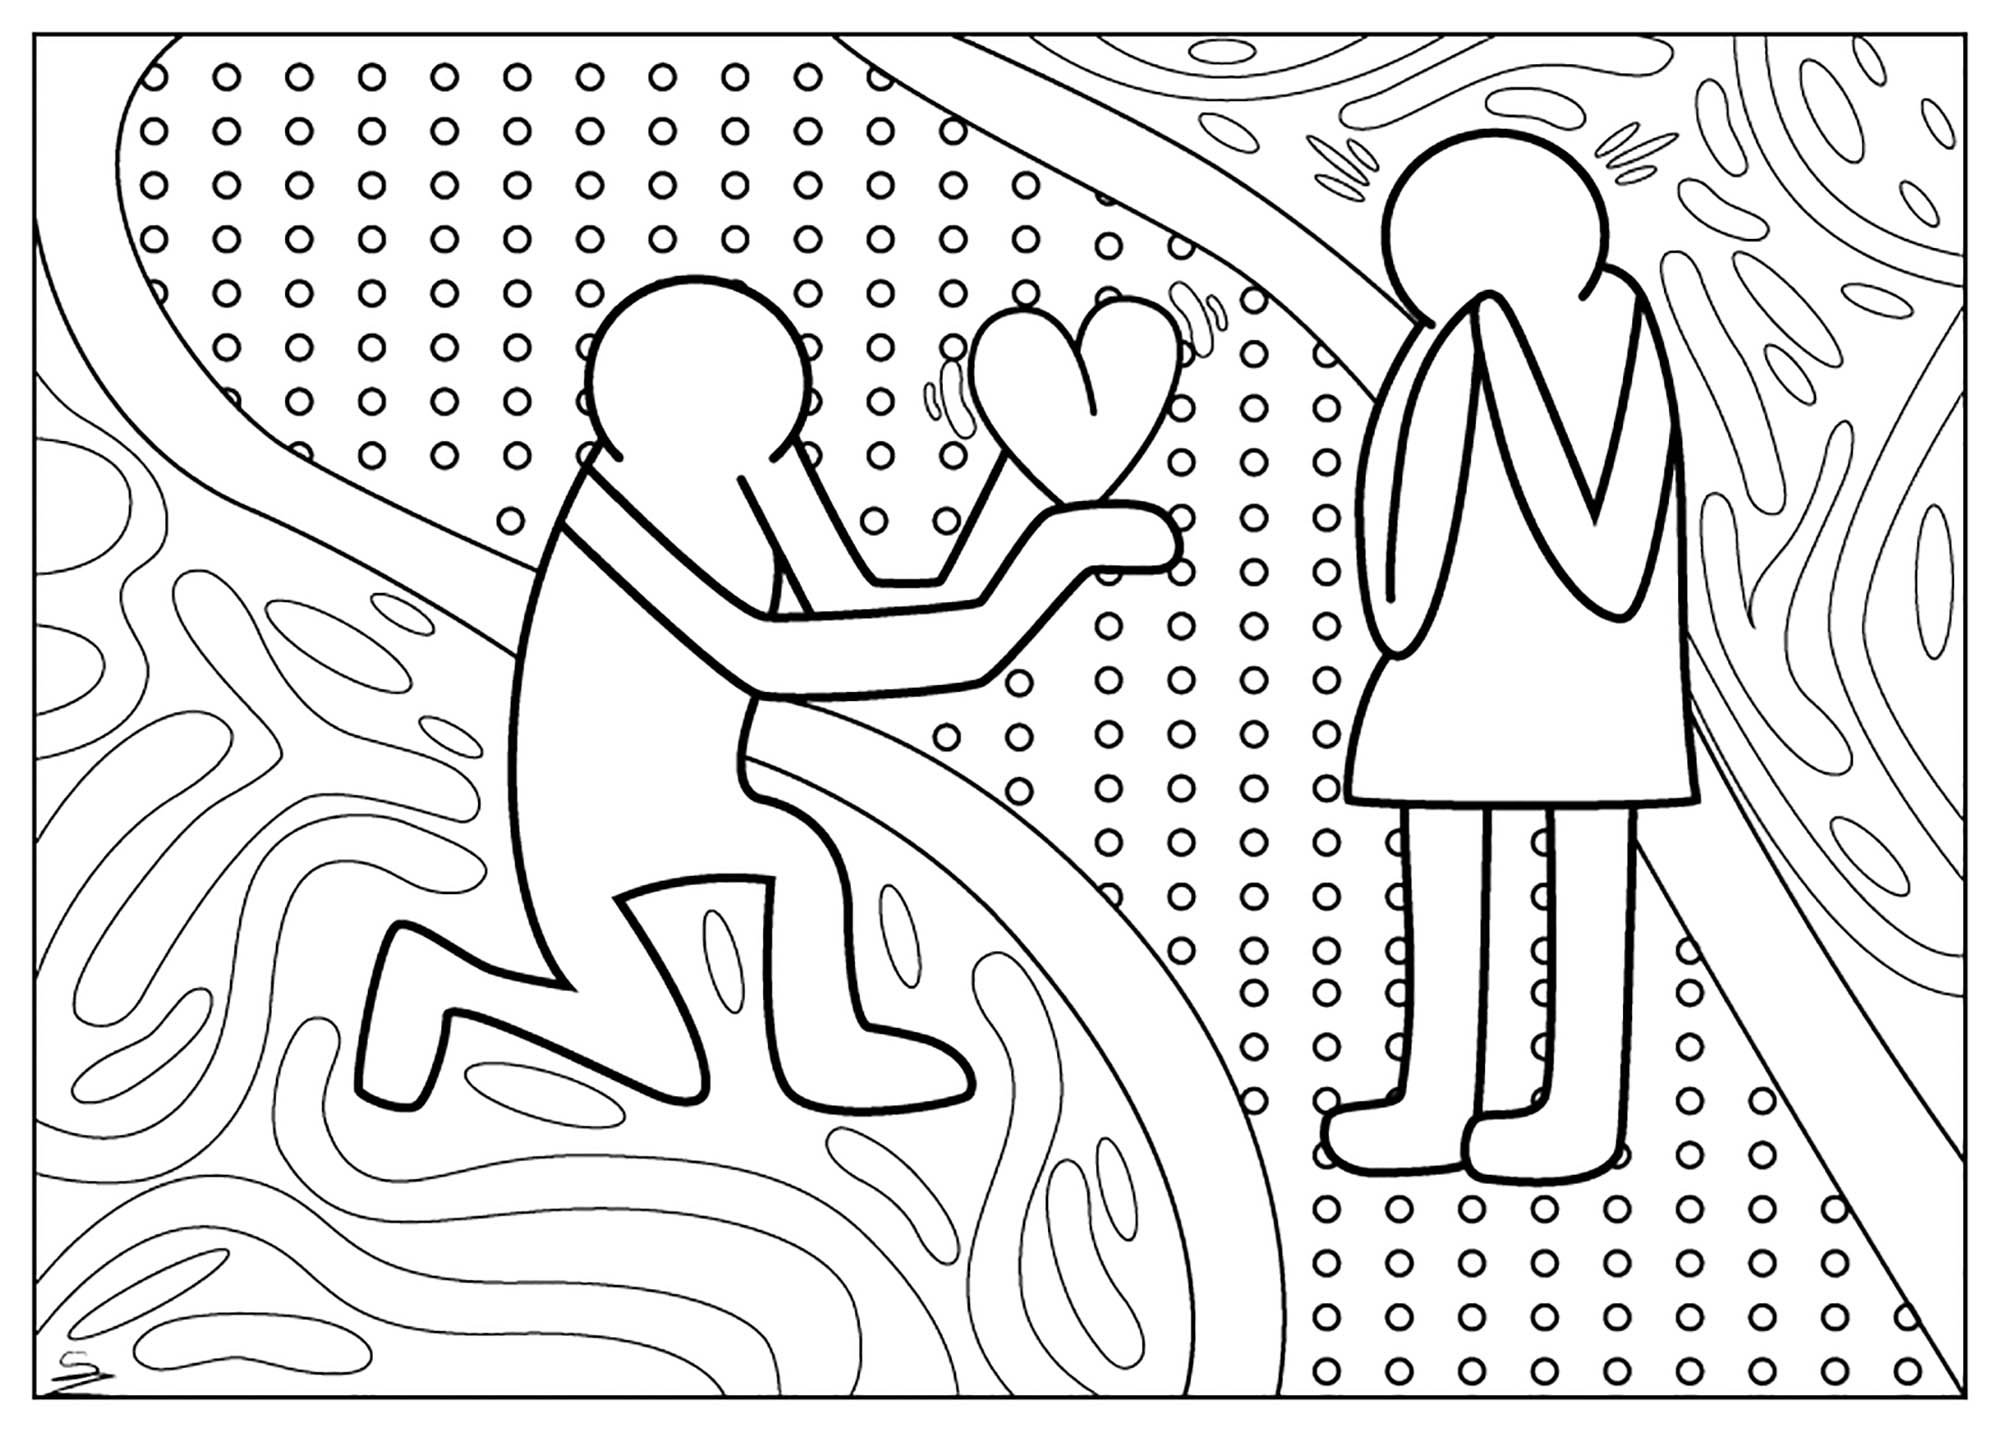 Valentines Day Coloring Pages For Adults Valentine Keith Haring Day Valentines Day Adult Coloring Pages